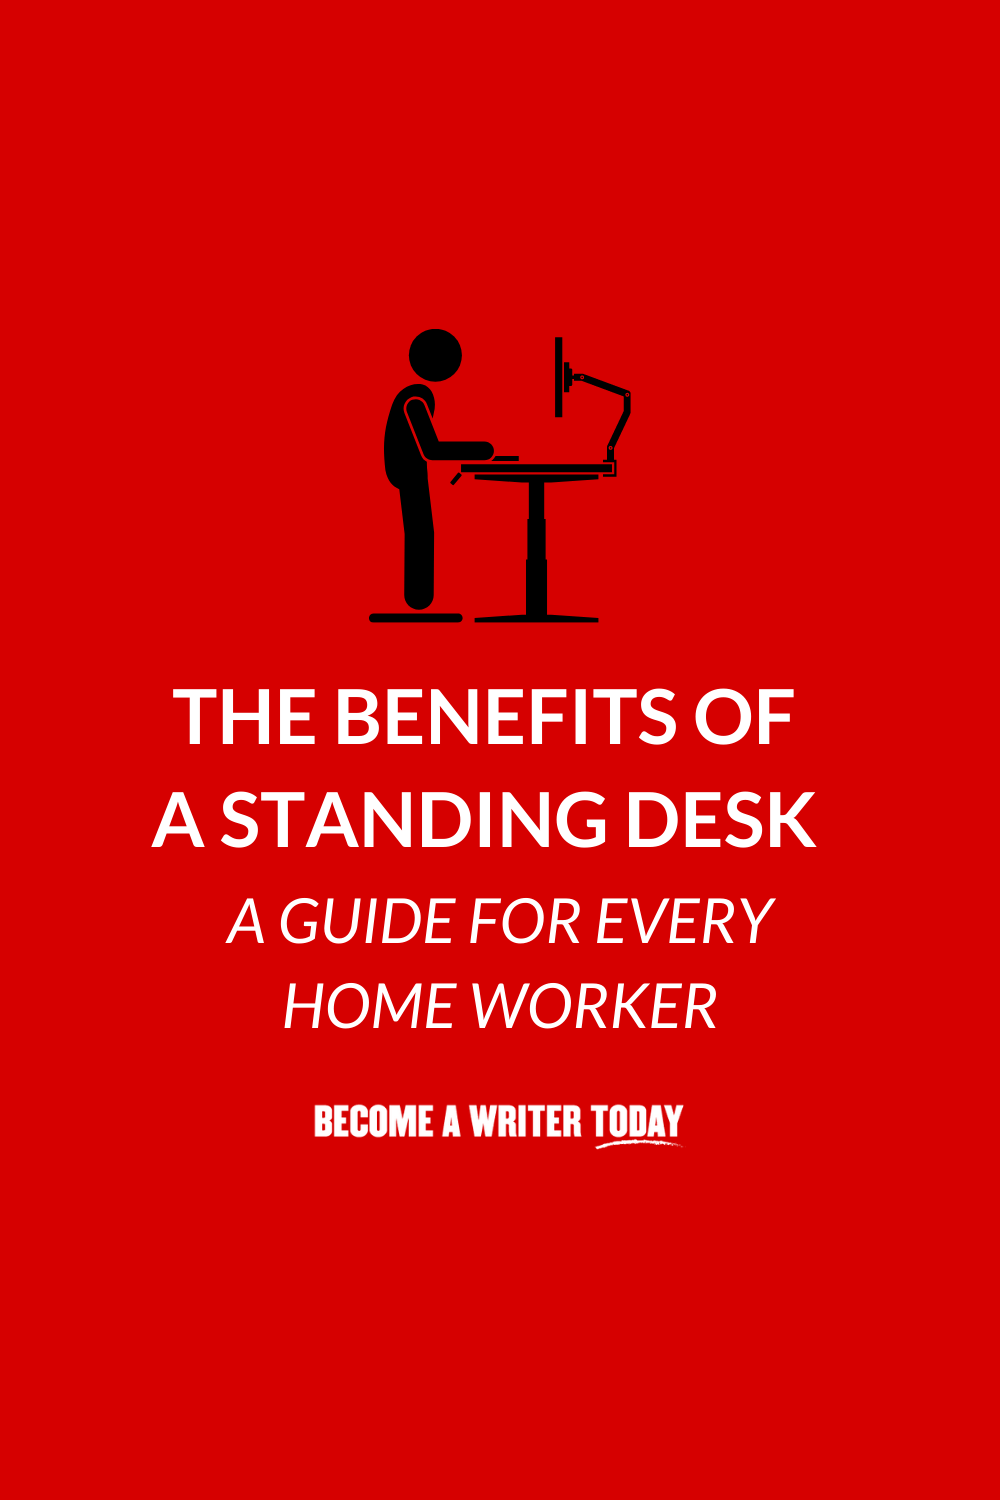 7 Surprising Benefits of a Standing Desk (A Guide for Every Home Worker)